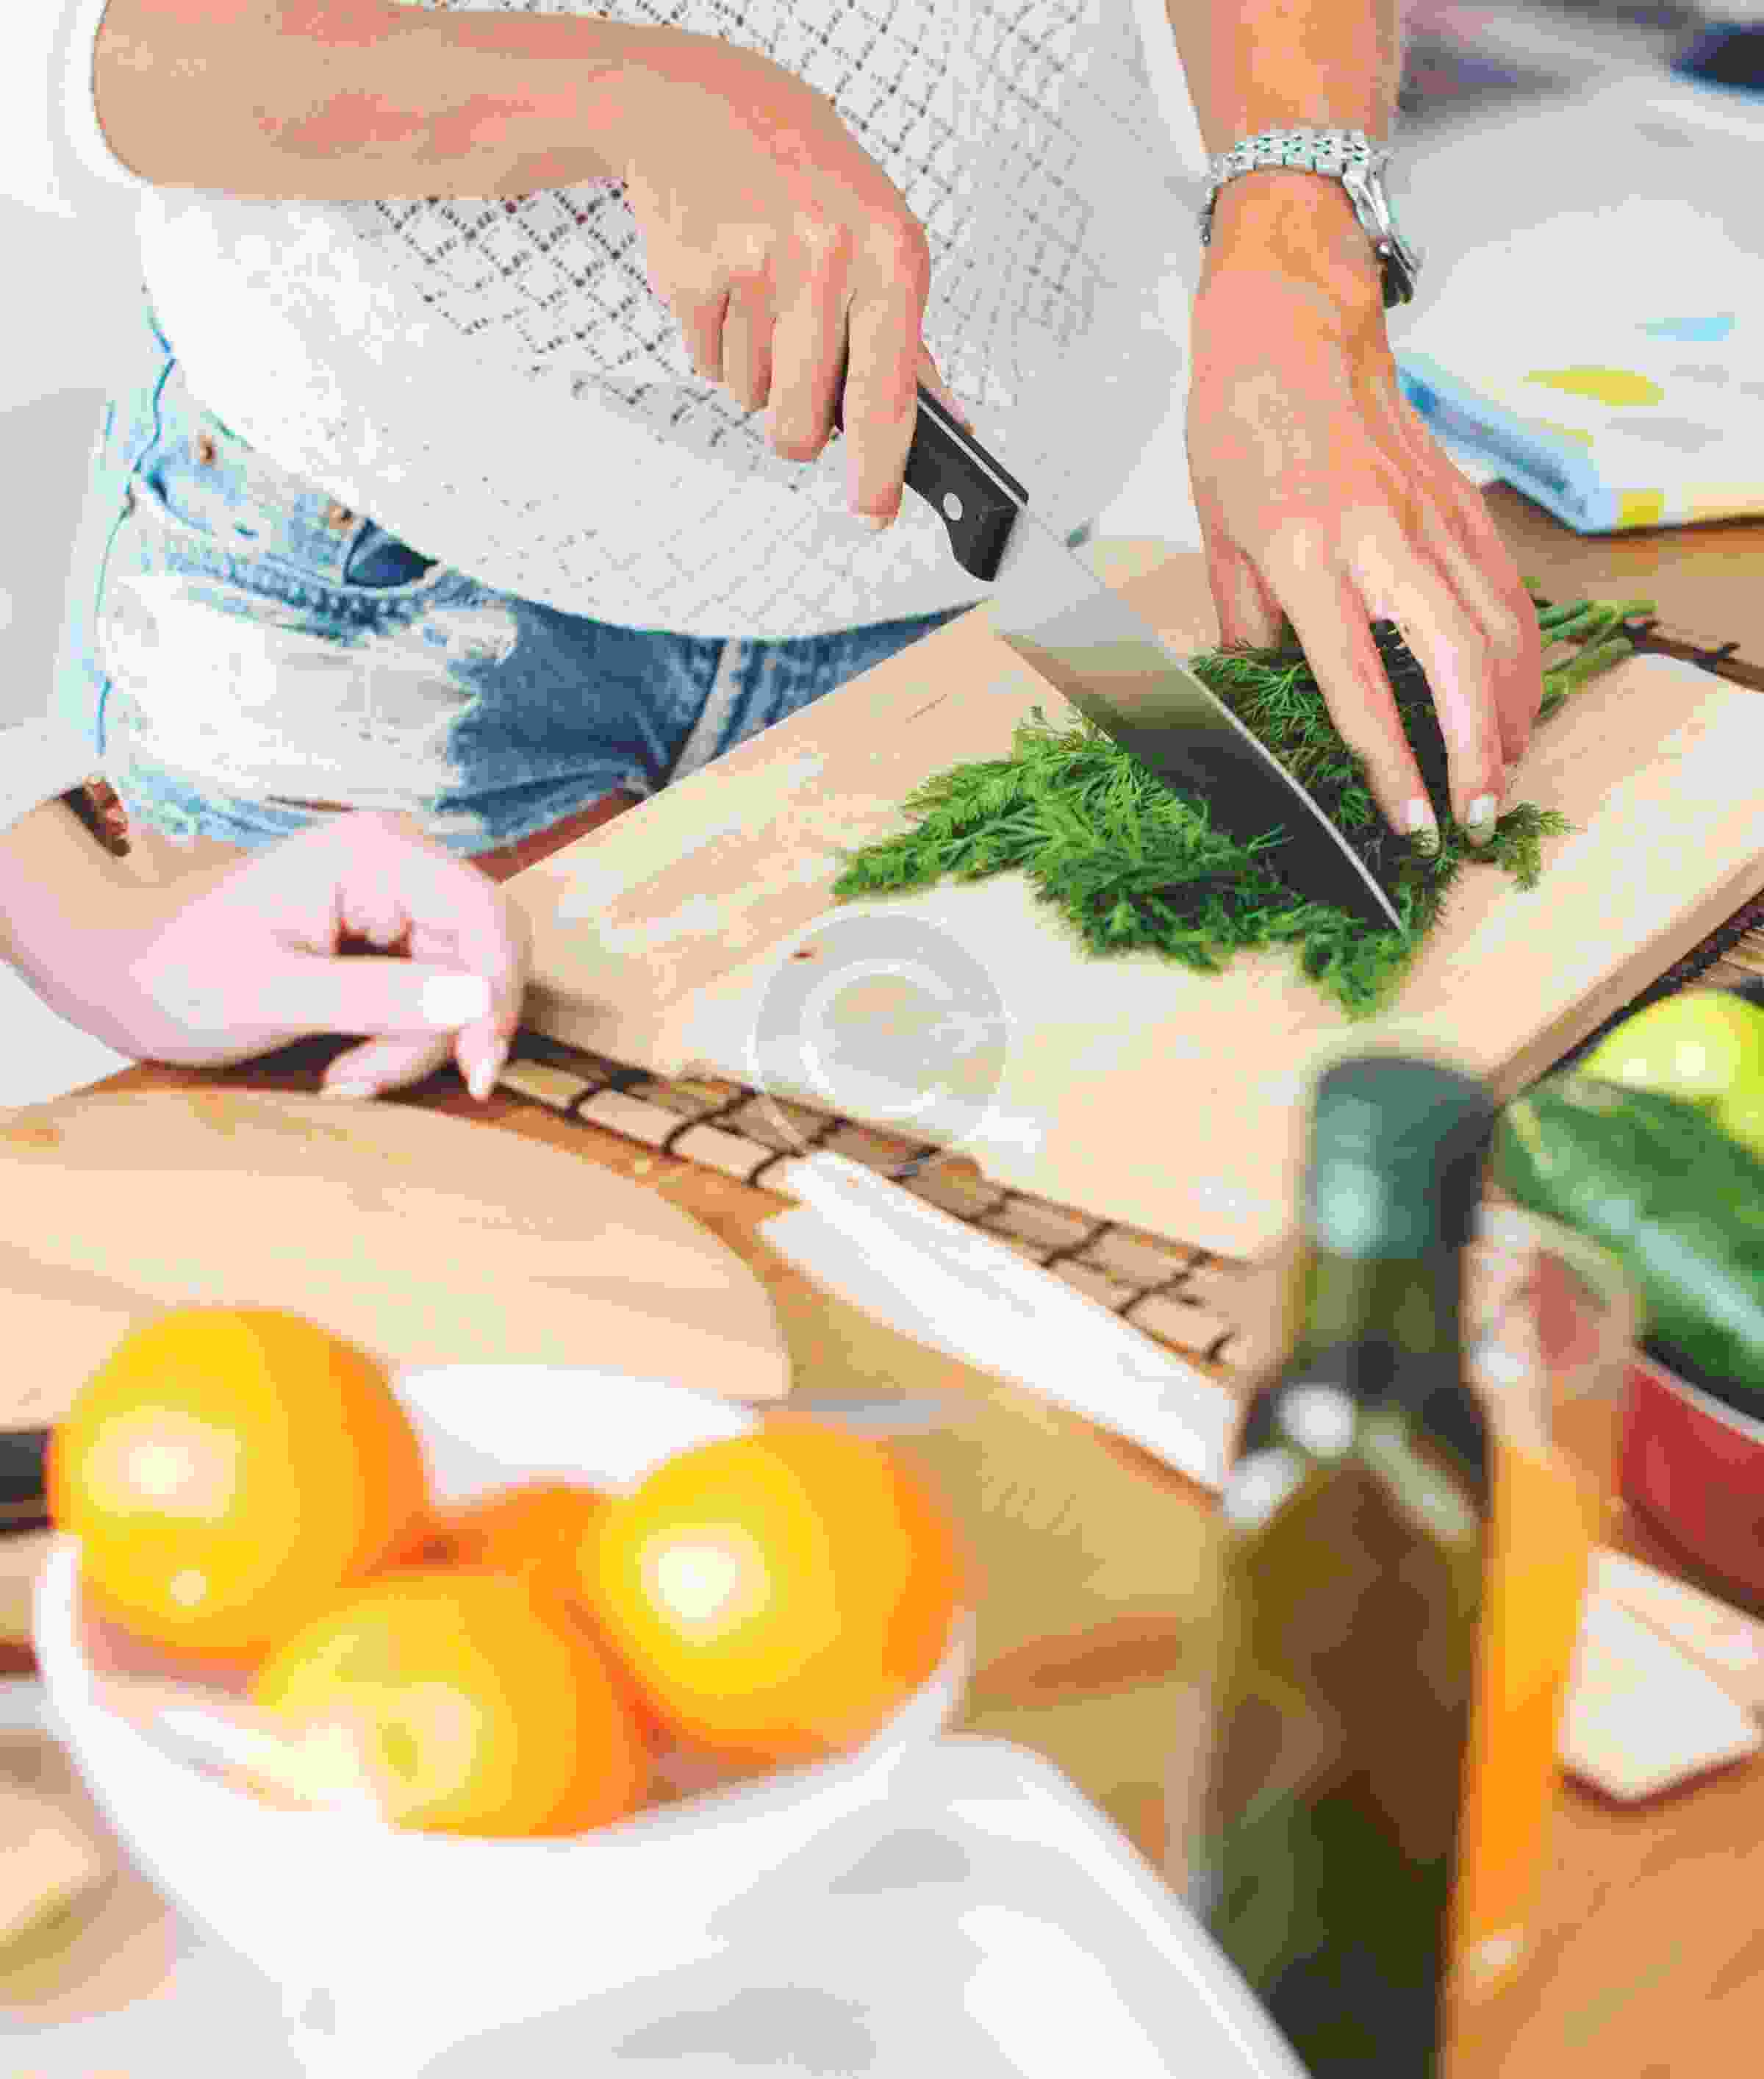 Learn about making various green salads at home